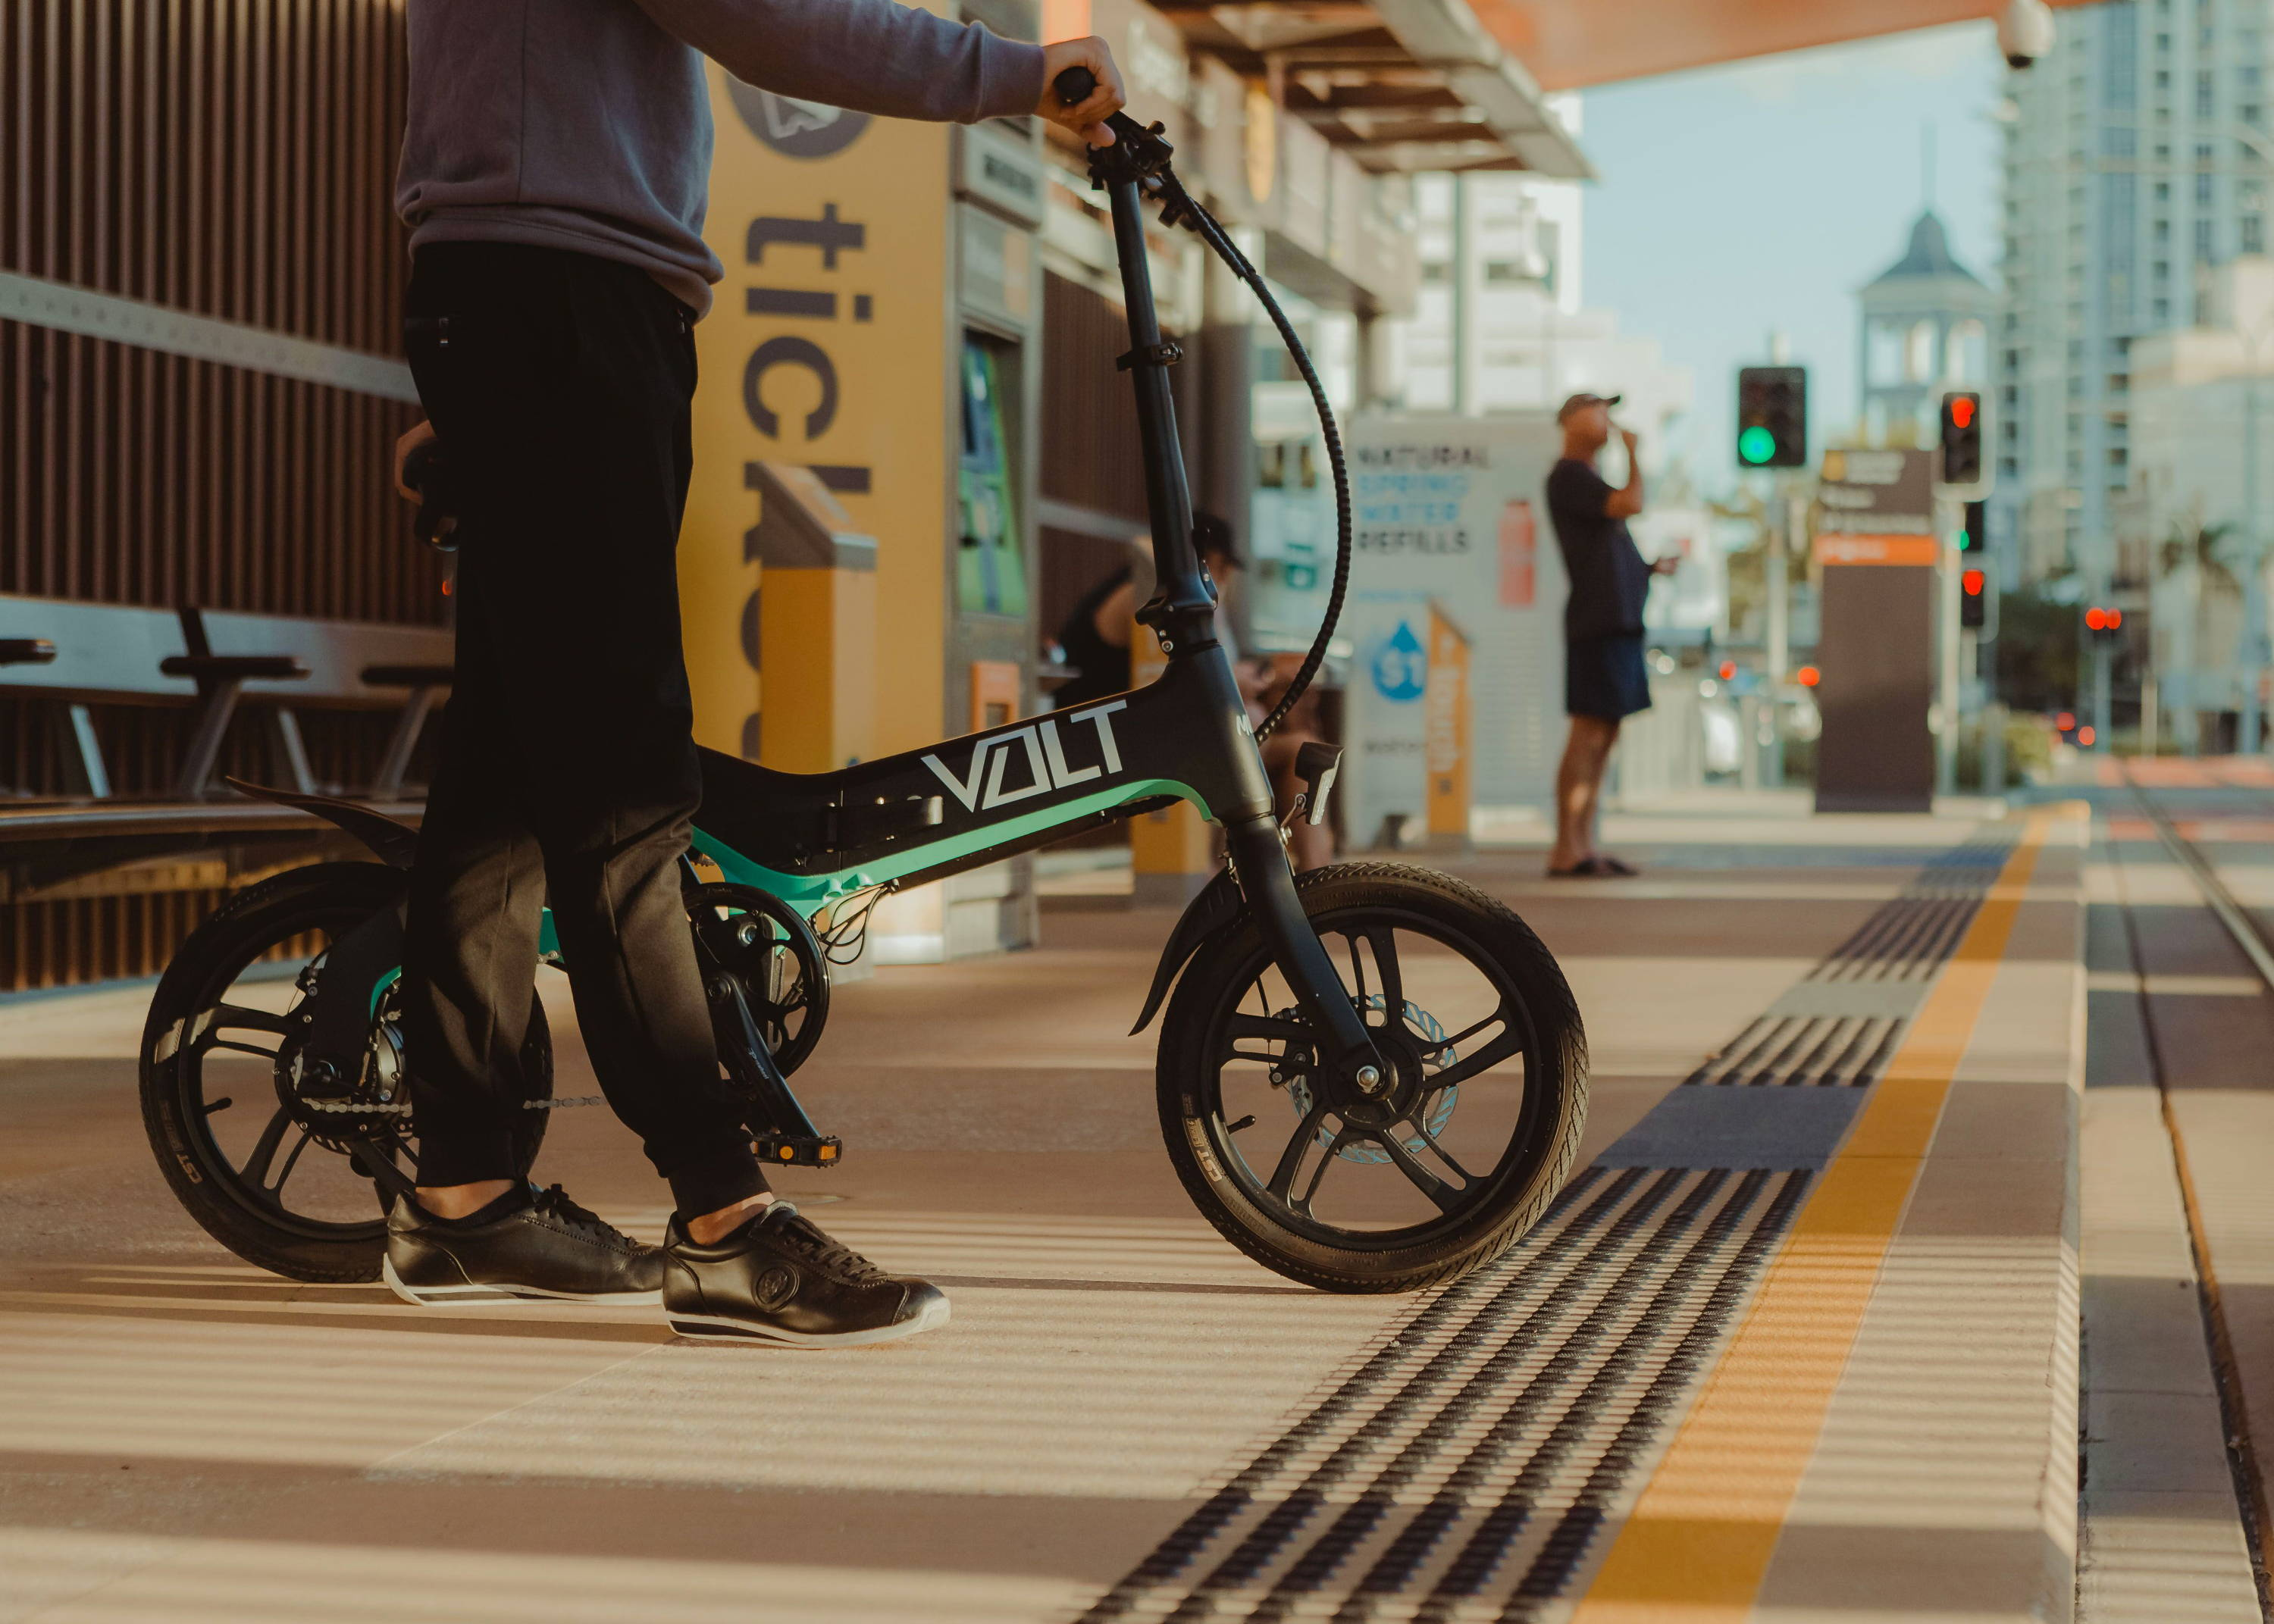 Man waits for tram with the VOLT Mate e-bike. The VOLT Mate electric bicycle can fold to take on public transports. it's 10 second folding design allows it to be quickly and conveniently taken onto trains, buses, trams and ferries alike. VOLT folding electric bikes can be used with public transport. VOLT ebikes can also fold and fit into the back and trunk of passenger cars. unique 3 step folding mechanism with removable and lockable battery means the VOLT mate is the most agile electric bike for sale.